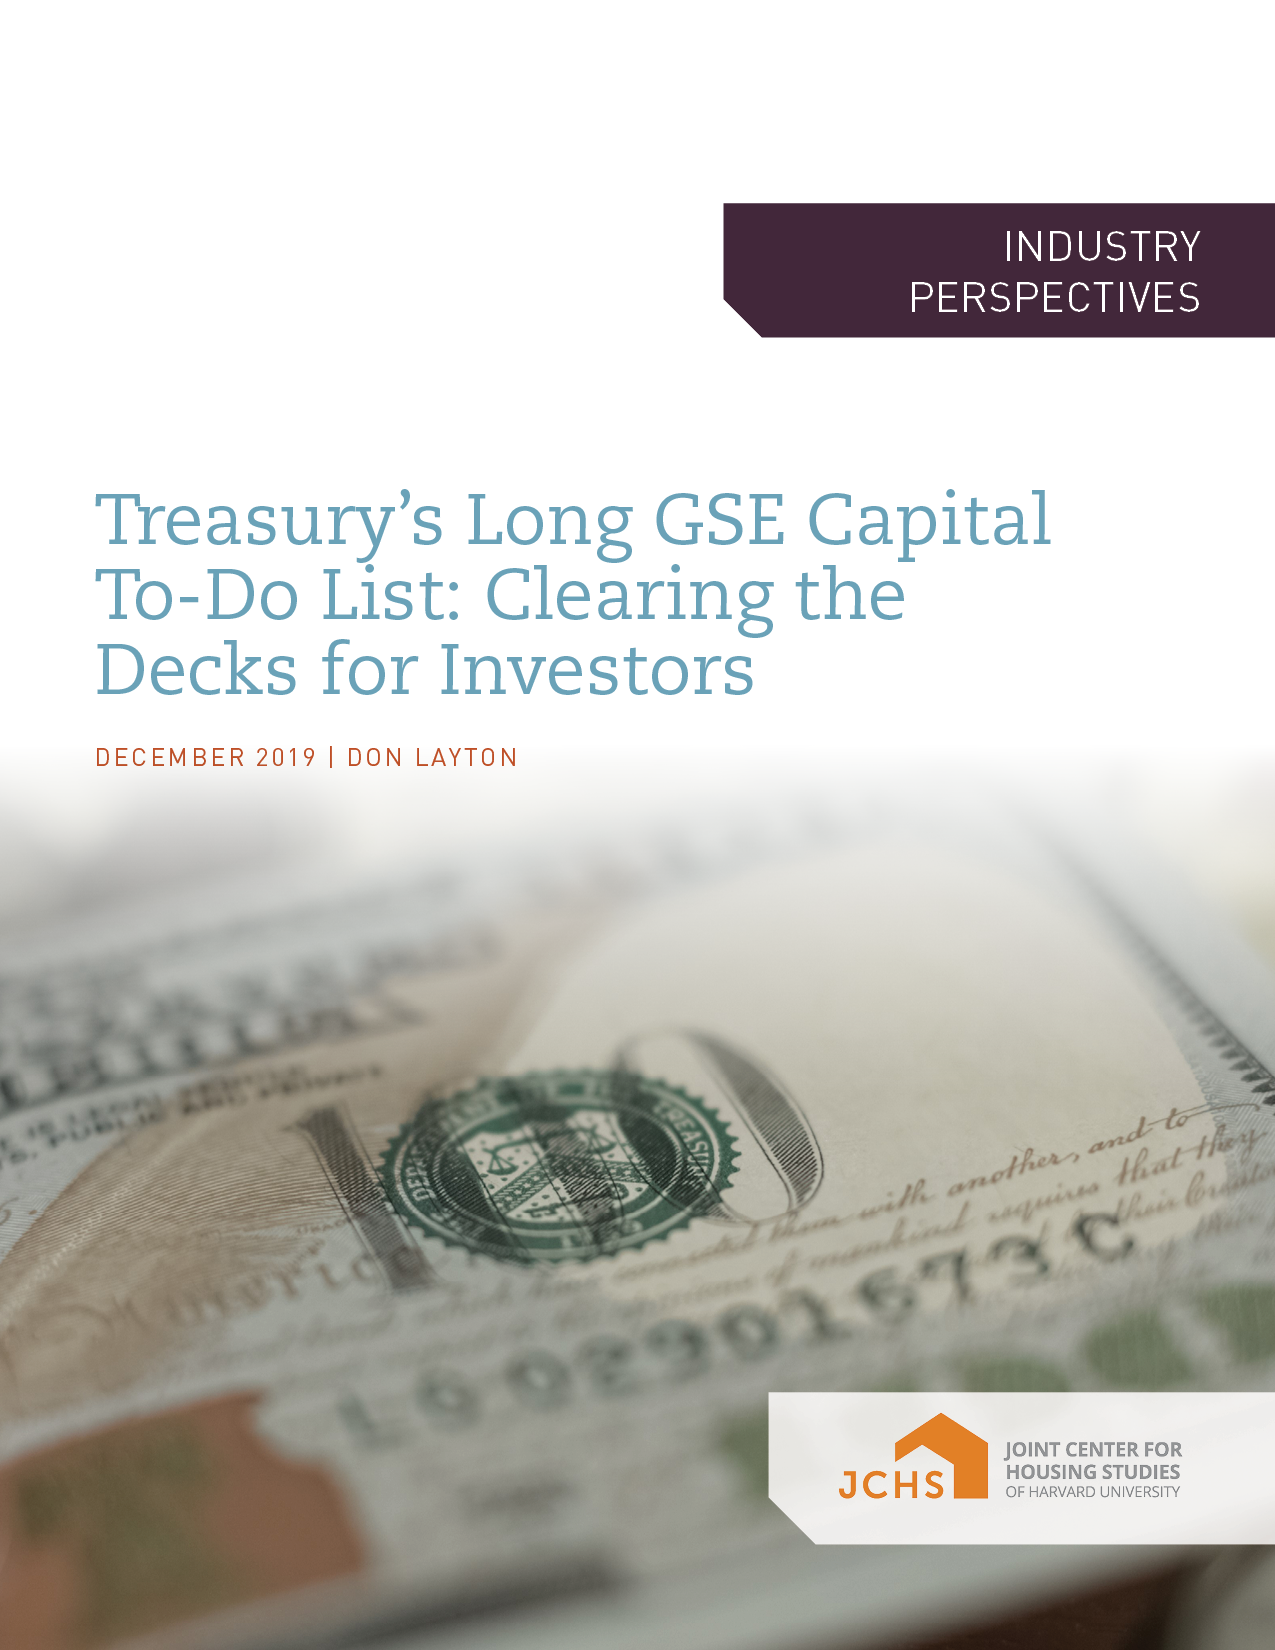 Treasury's Long GSE Capital To-Do List: Clearing the Decks for Investors